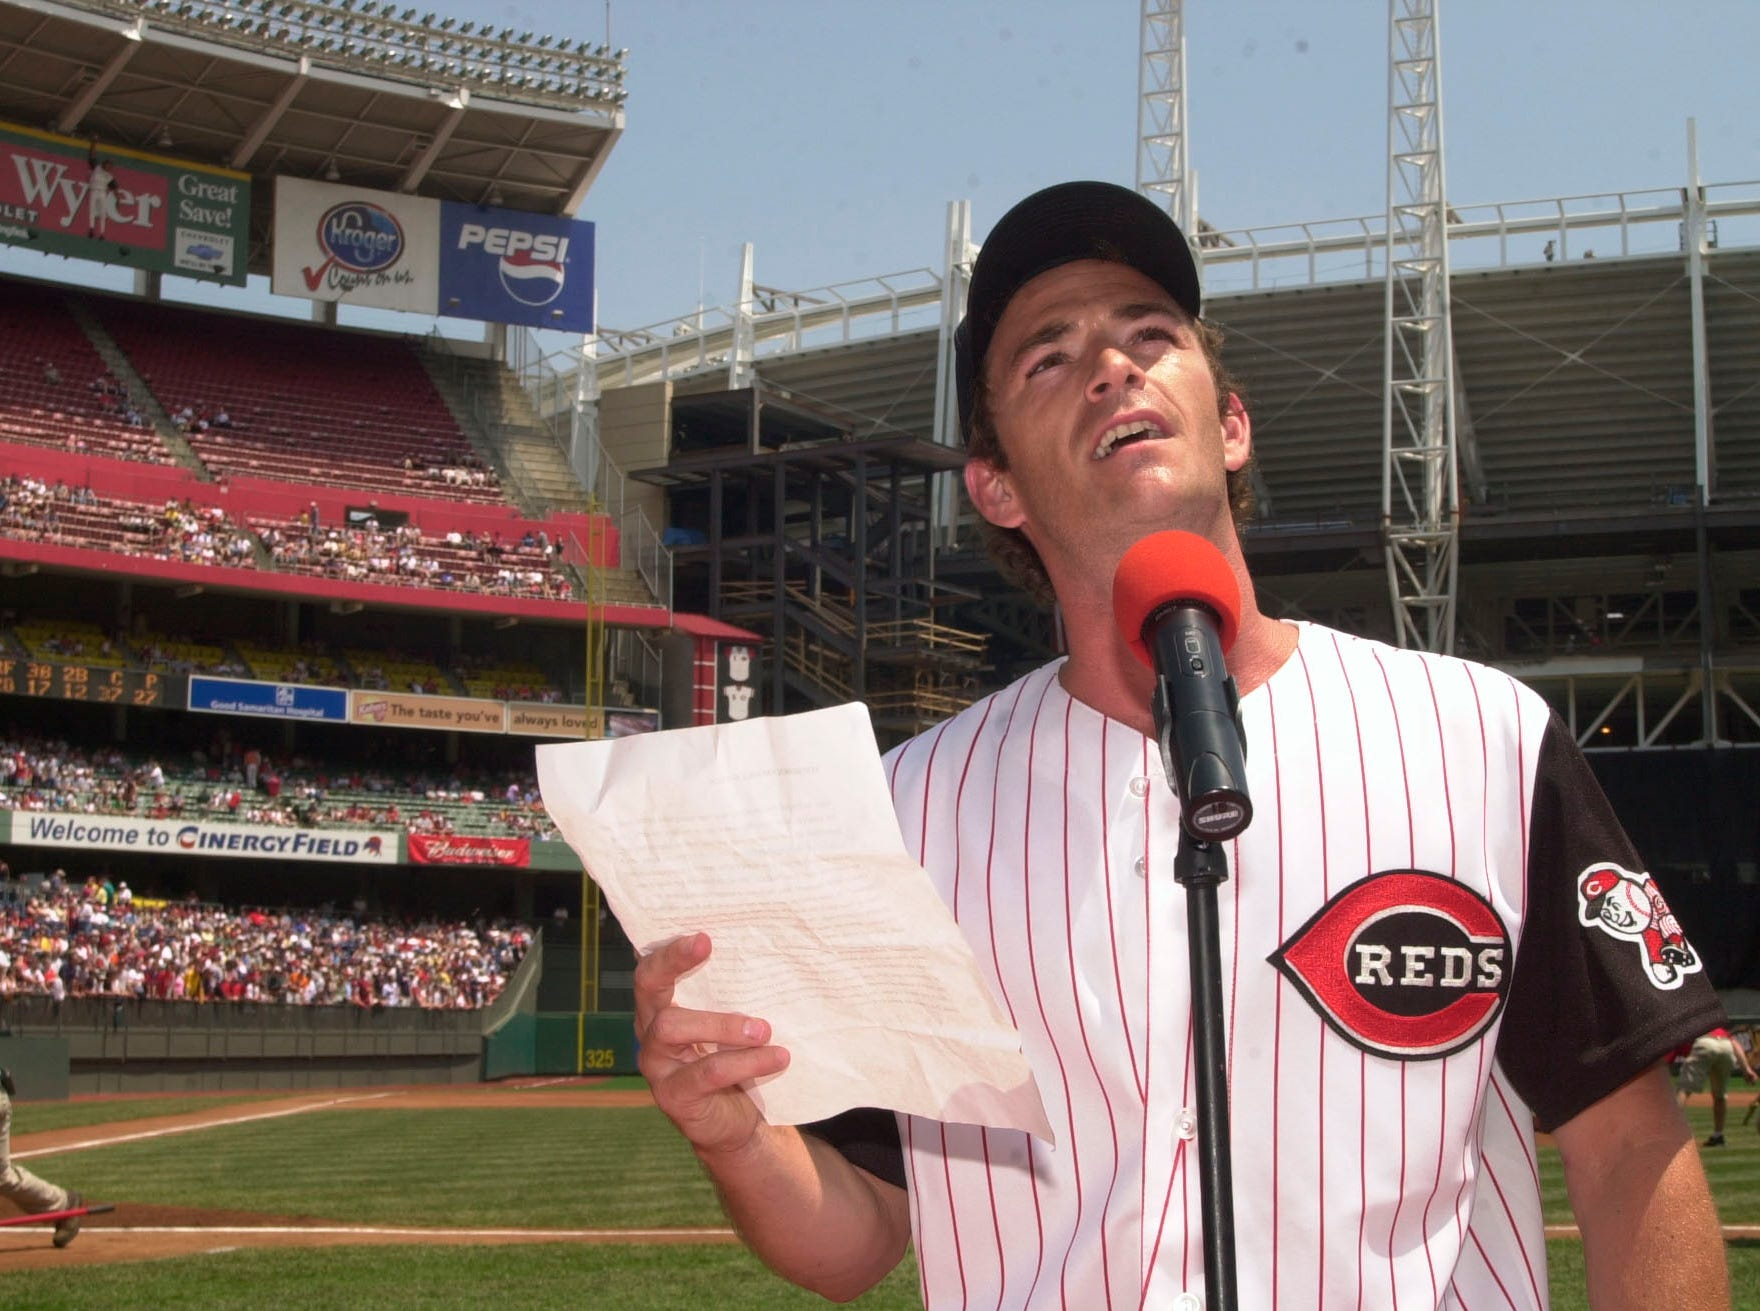 Actor Luke Perry reads Lou Gehrig's historical farewell speech Saturday, June 1, 2002 prior to the Atlanta Braves/Cincinnati Reds' game at Cinergy Field in Cincinnati. Celebrities in 14 ballparks across the country recited the speech as part of Project A.L.S. Day.